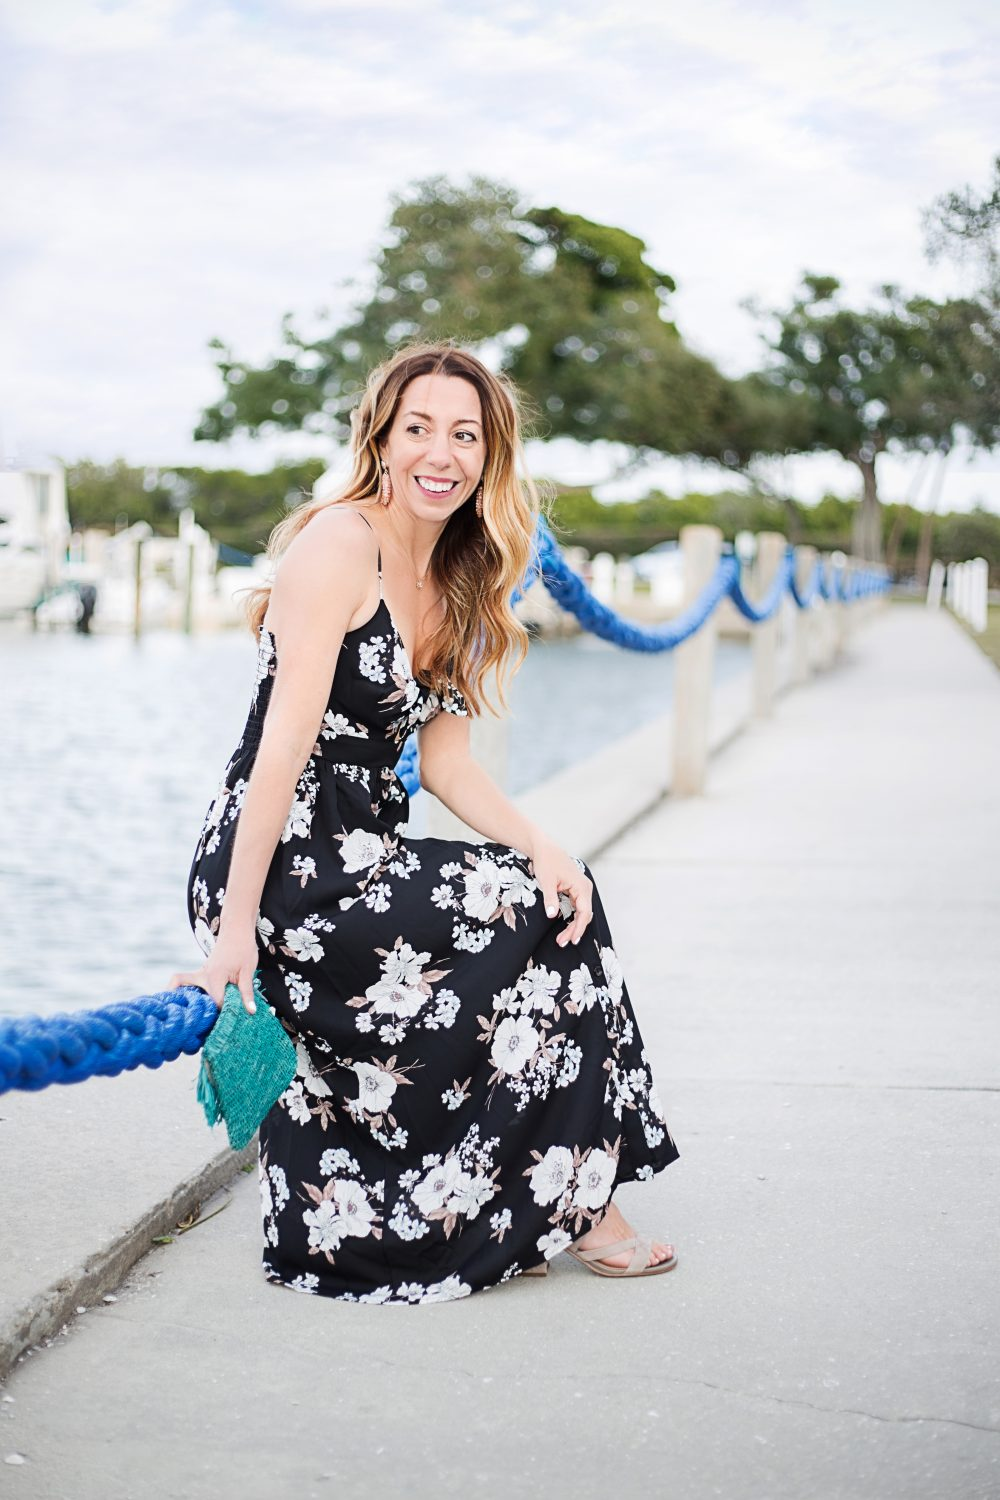 The Motherchic wearing soprano floral maxi